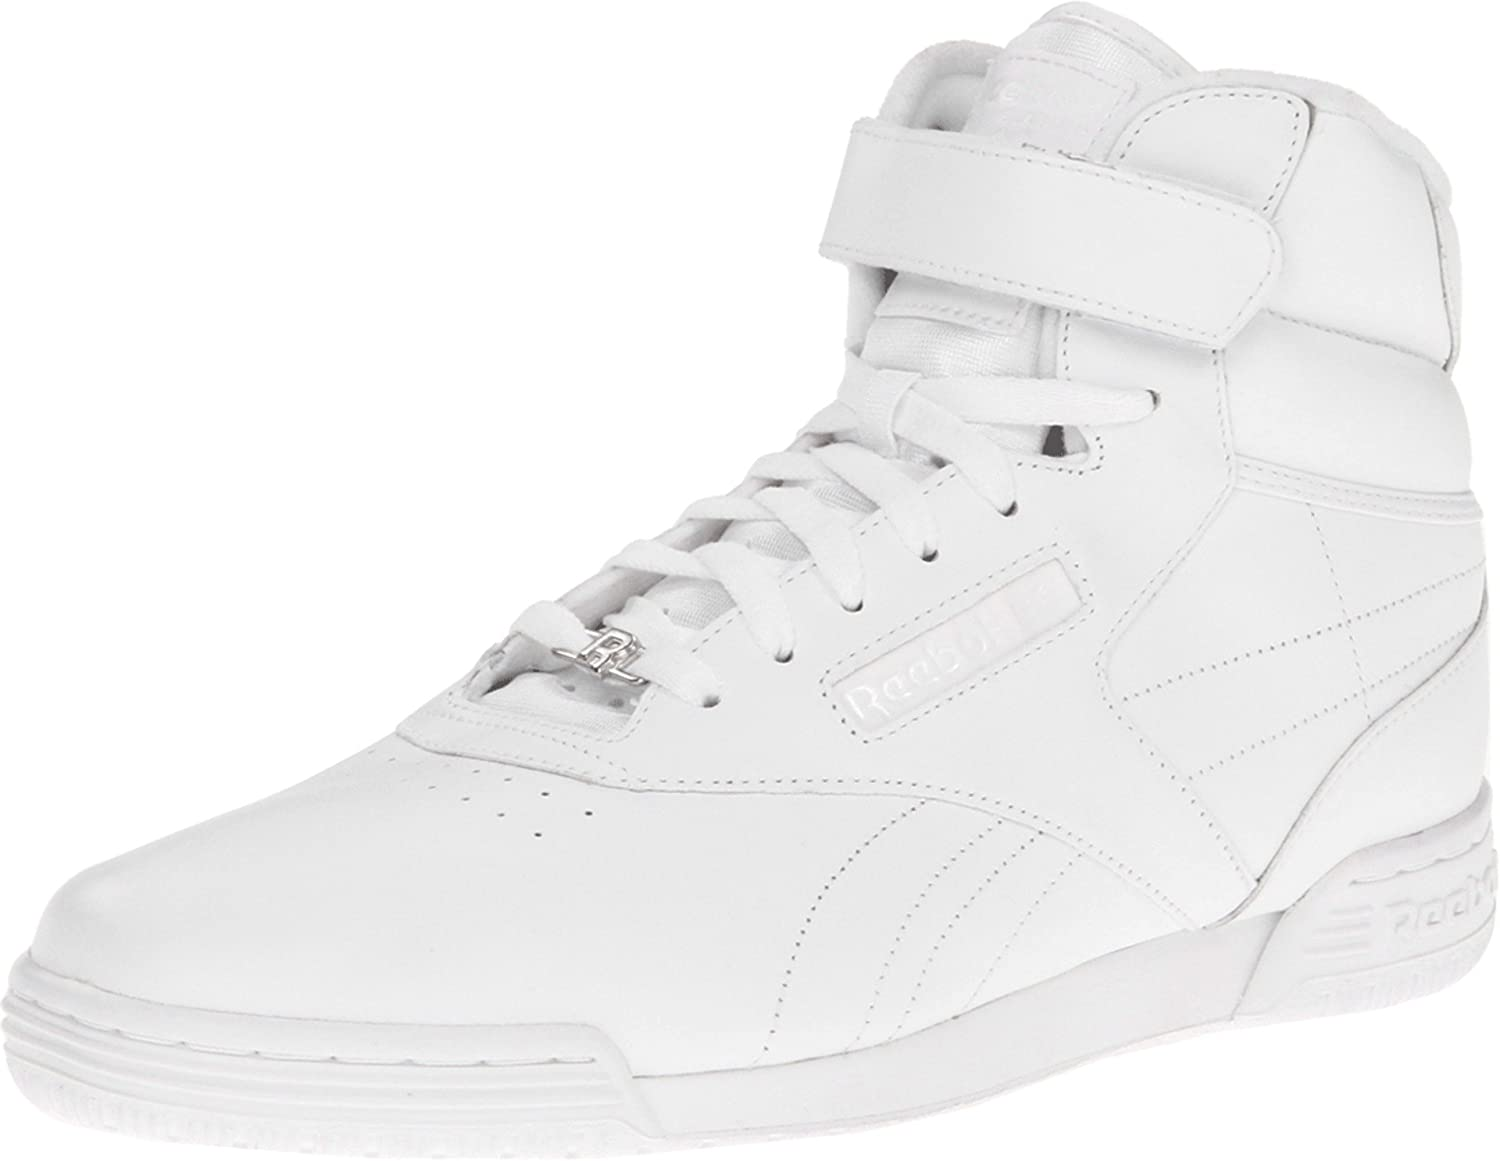 2d2d475e24be Reebok Exofit Hi White Mens Trainers Size 9.5 UK  Amazon.co.uk  Shoes   Bags